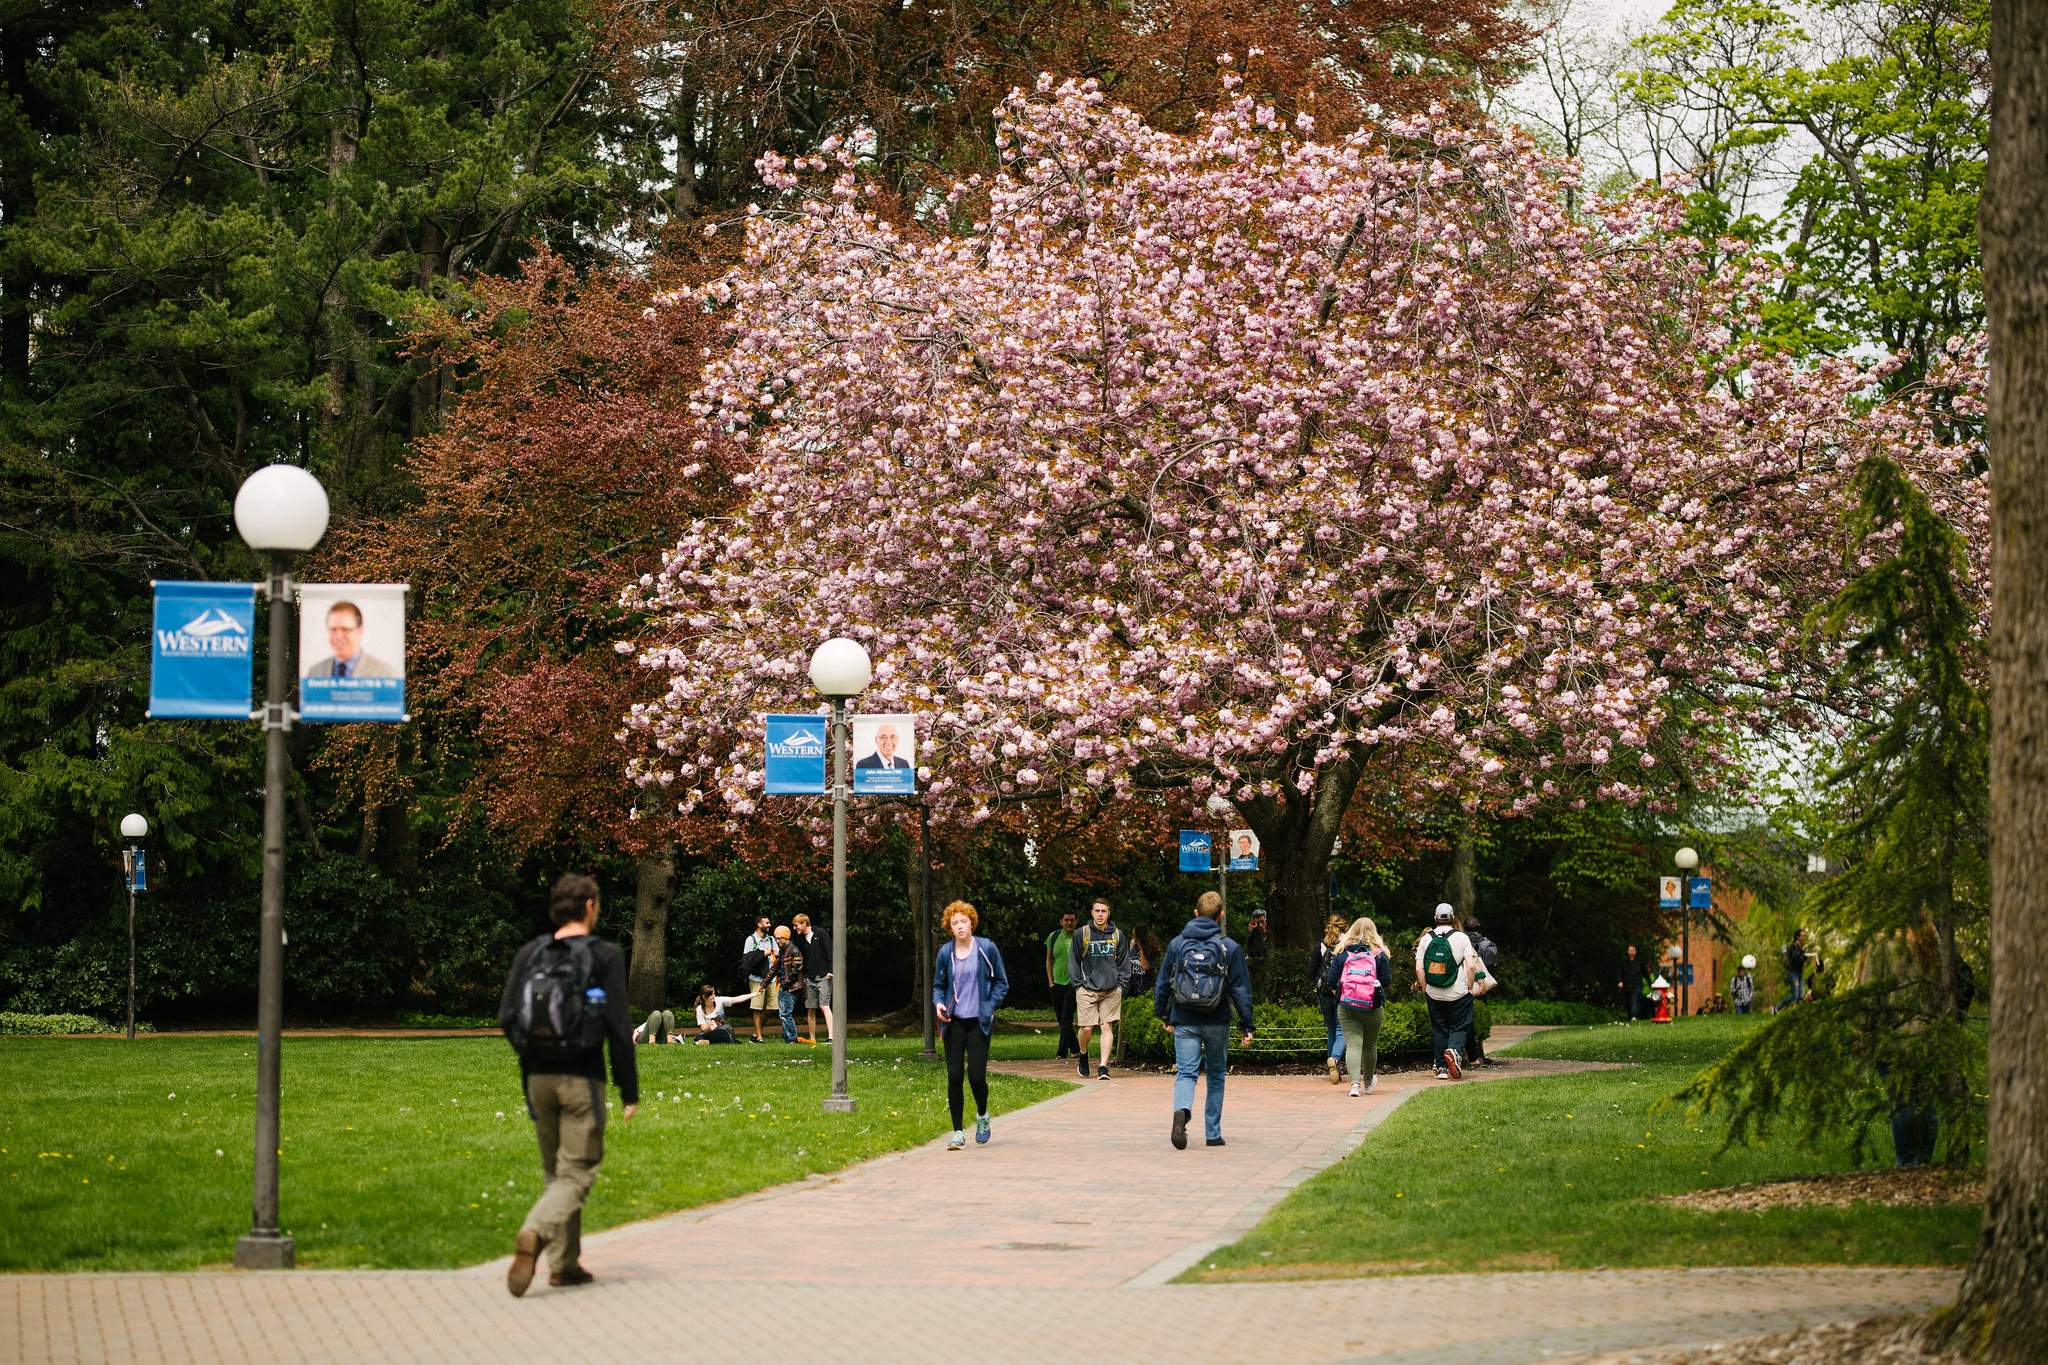 Student walking to class among blooming pink trees on a spring day